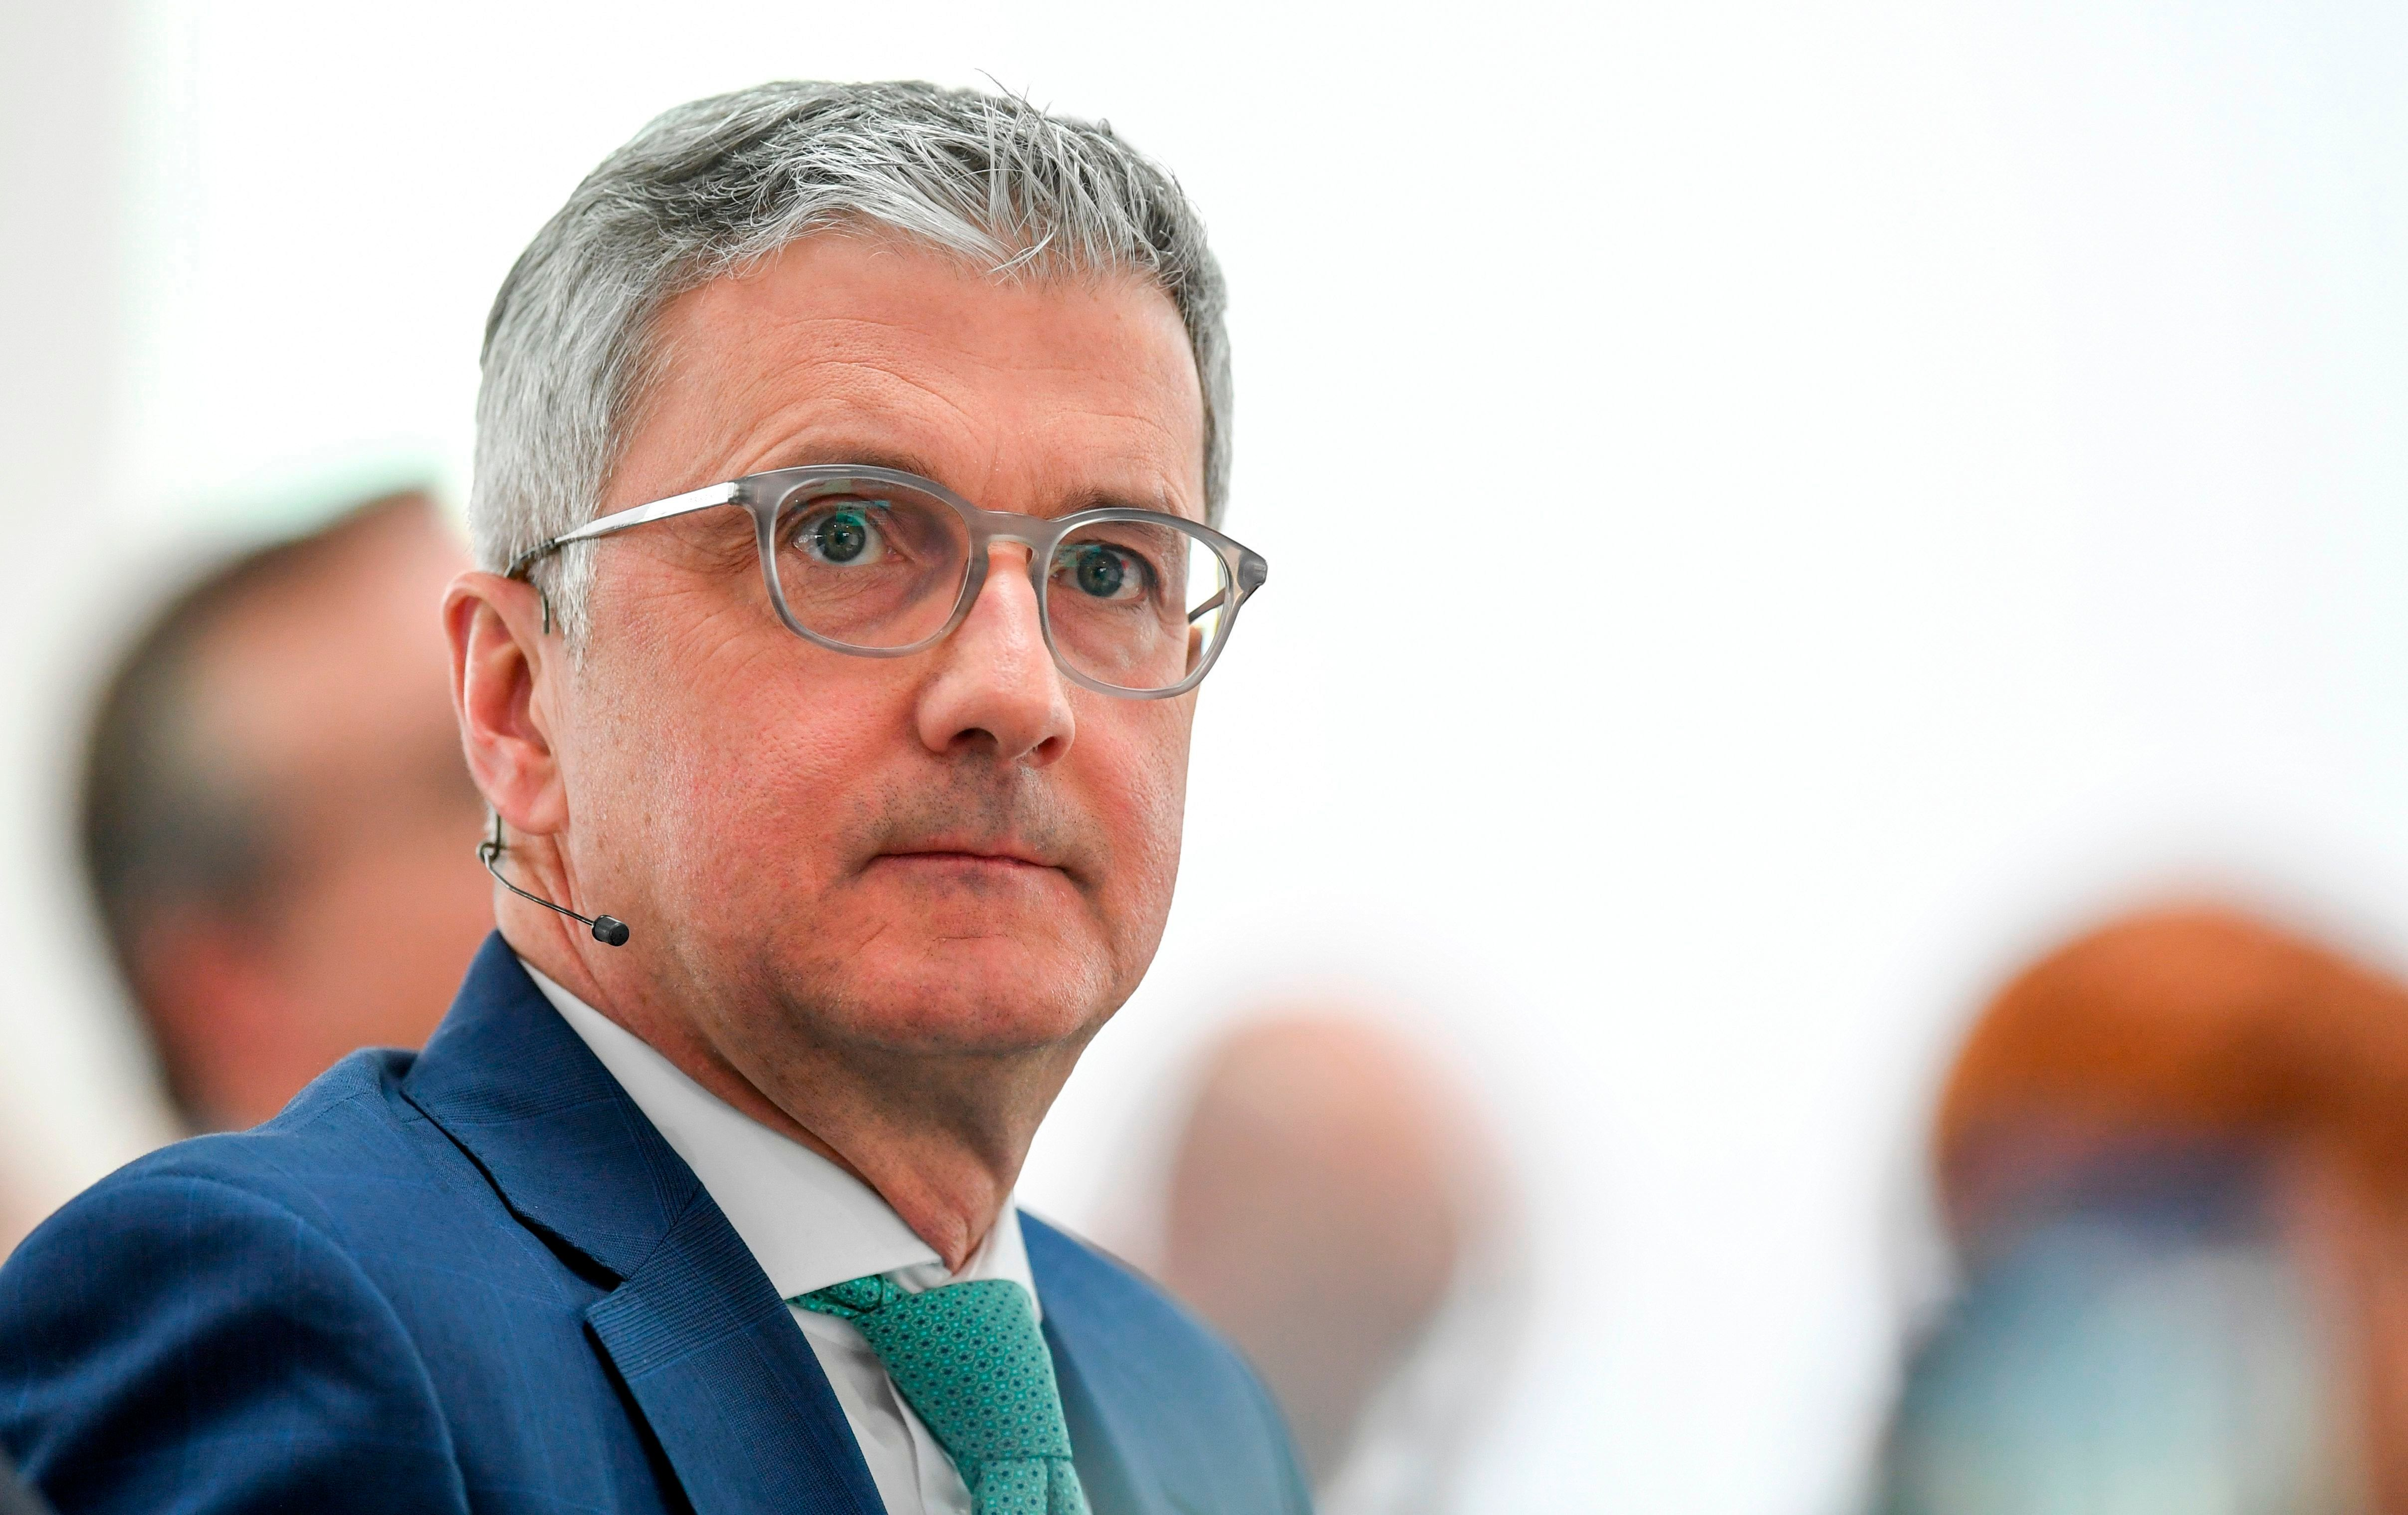 The CEO of the German carmaker Audi AG, Rupert Stadler attends the annual press conference at the headquarters in Ingolstadt, on March 15, 2018.   / AFP PHOTO / CHRISTOF STACHE        (Photo credit should read CHRISTOF STACHE/AFP/Getty Images)